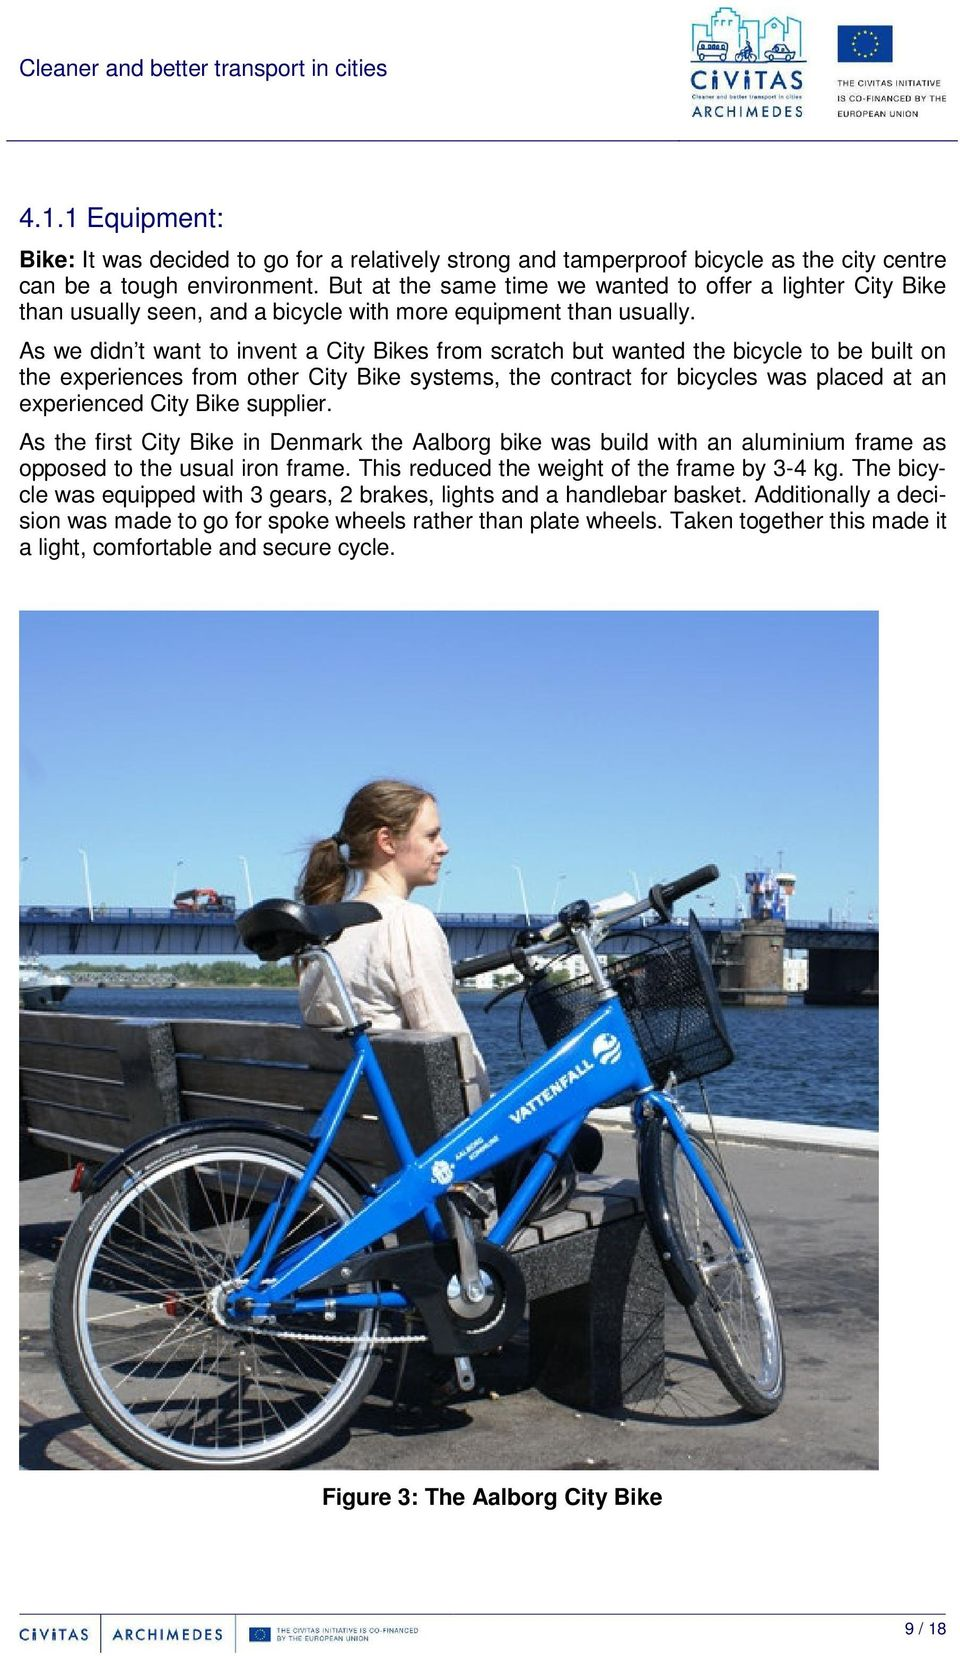 As we didn t want to invent a City Bikes from scratch but wanted the bicycle to be built on the experiences from other City Bike systems, the contract for bicycles was placed at an experienced City